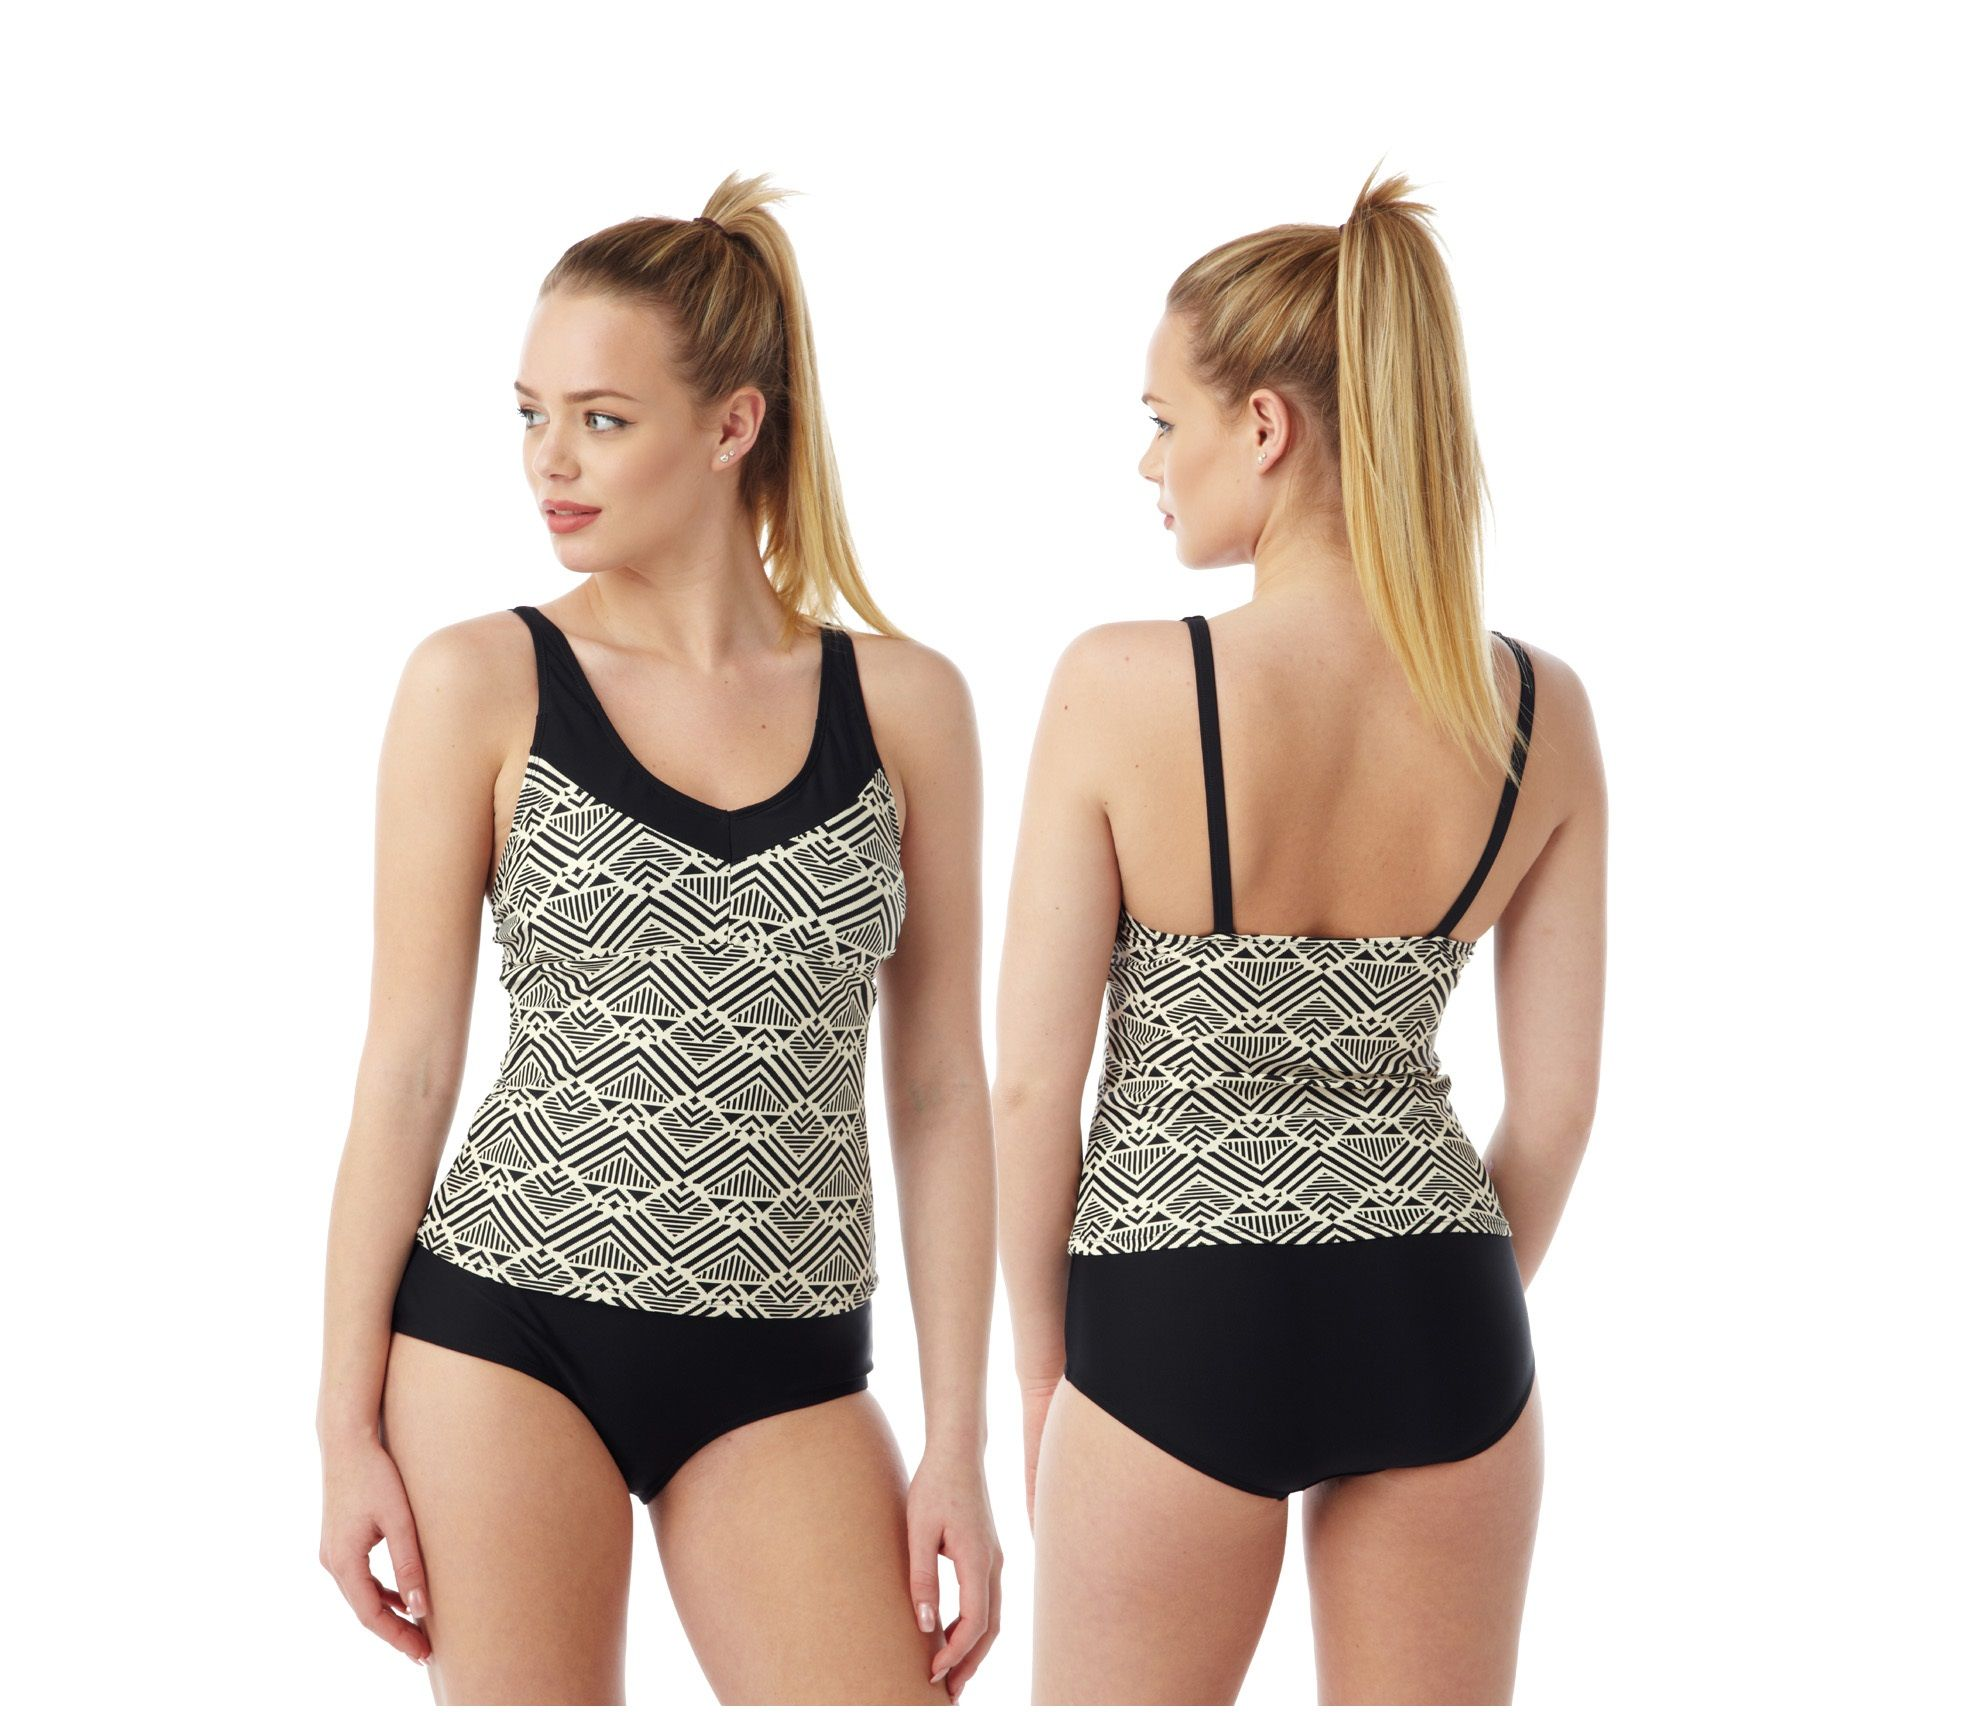 6453ae6e8e Black Print Tankini: in UK sizes 10, 12, 14, 16, 18, 20, 22 & 24. Choose  from cup sizes B to C cup or D to DD cup. With standard straps, full cover  bottoms.